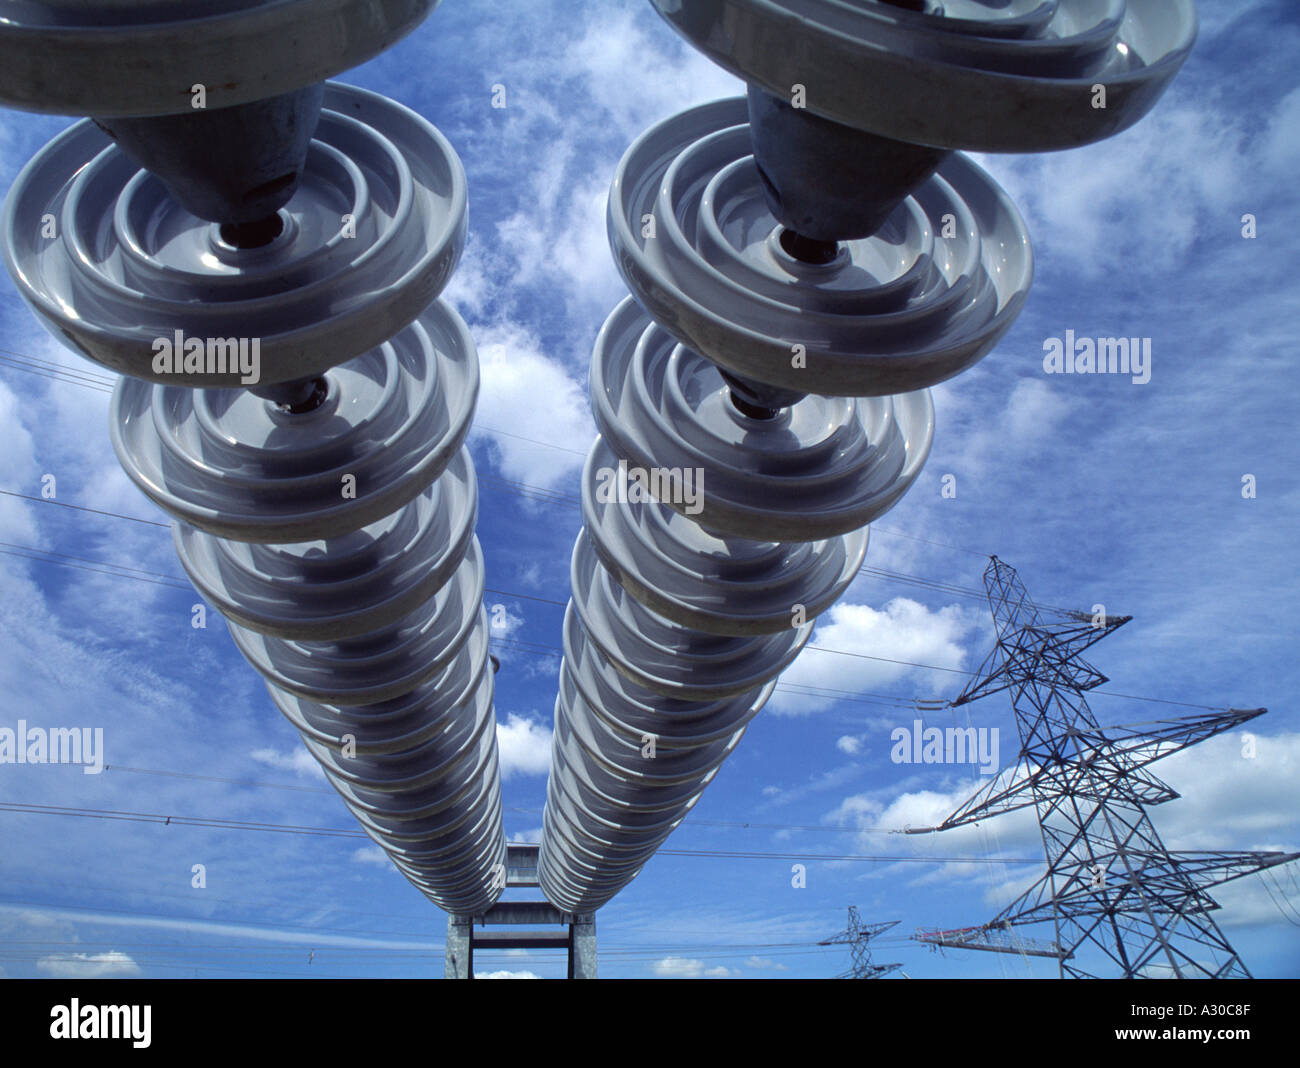 Electricity Insulators on power line on electricity grid - Stock Image